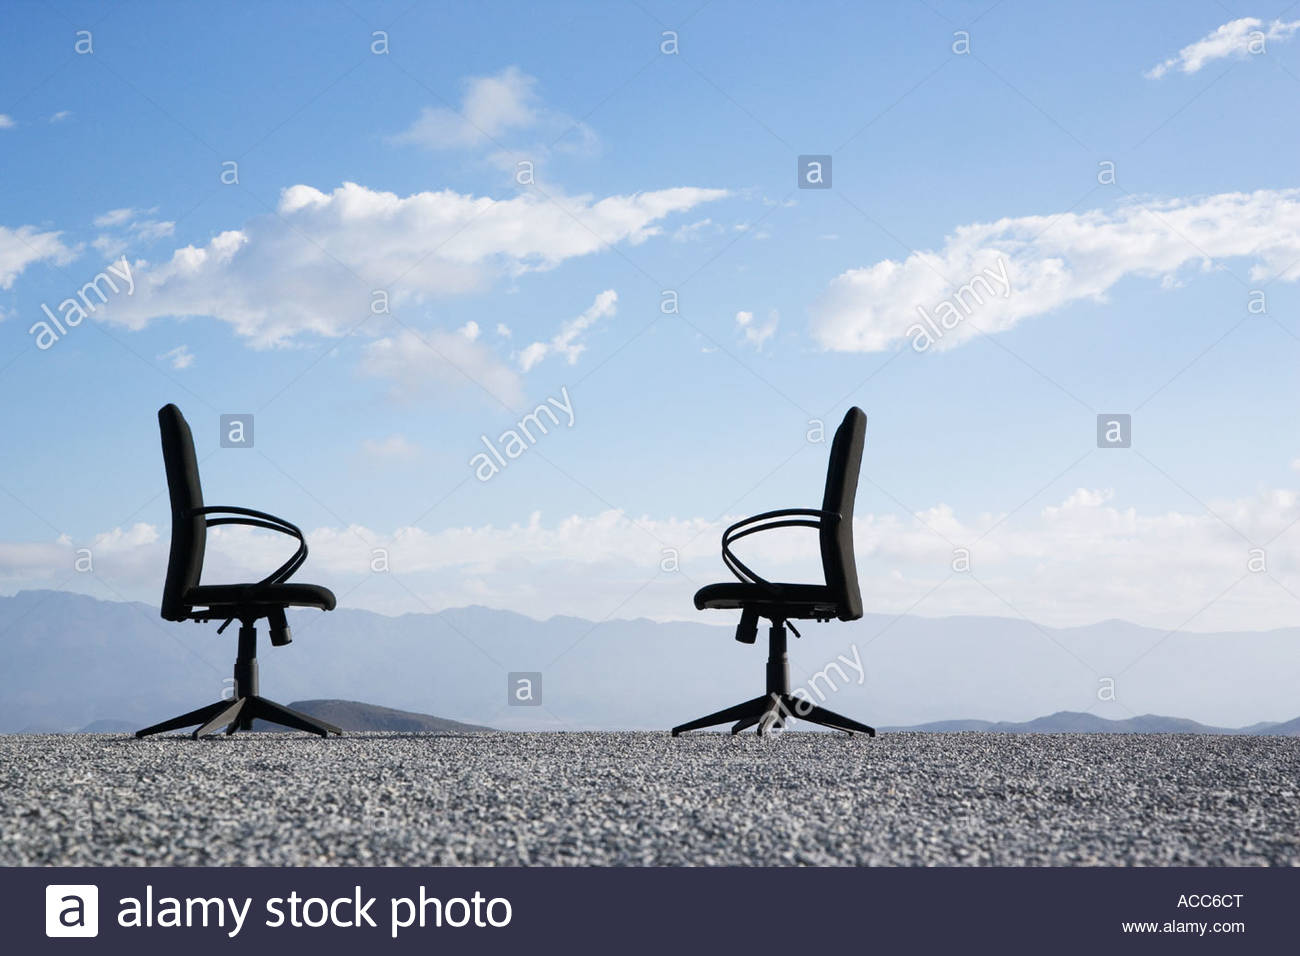 Two office chairs on a terrain full of pebbles - Stock Image